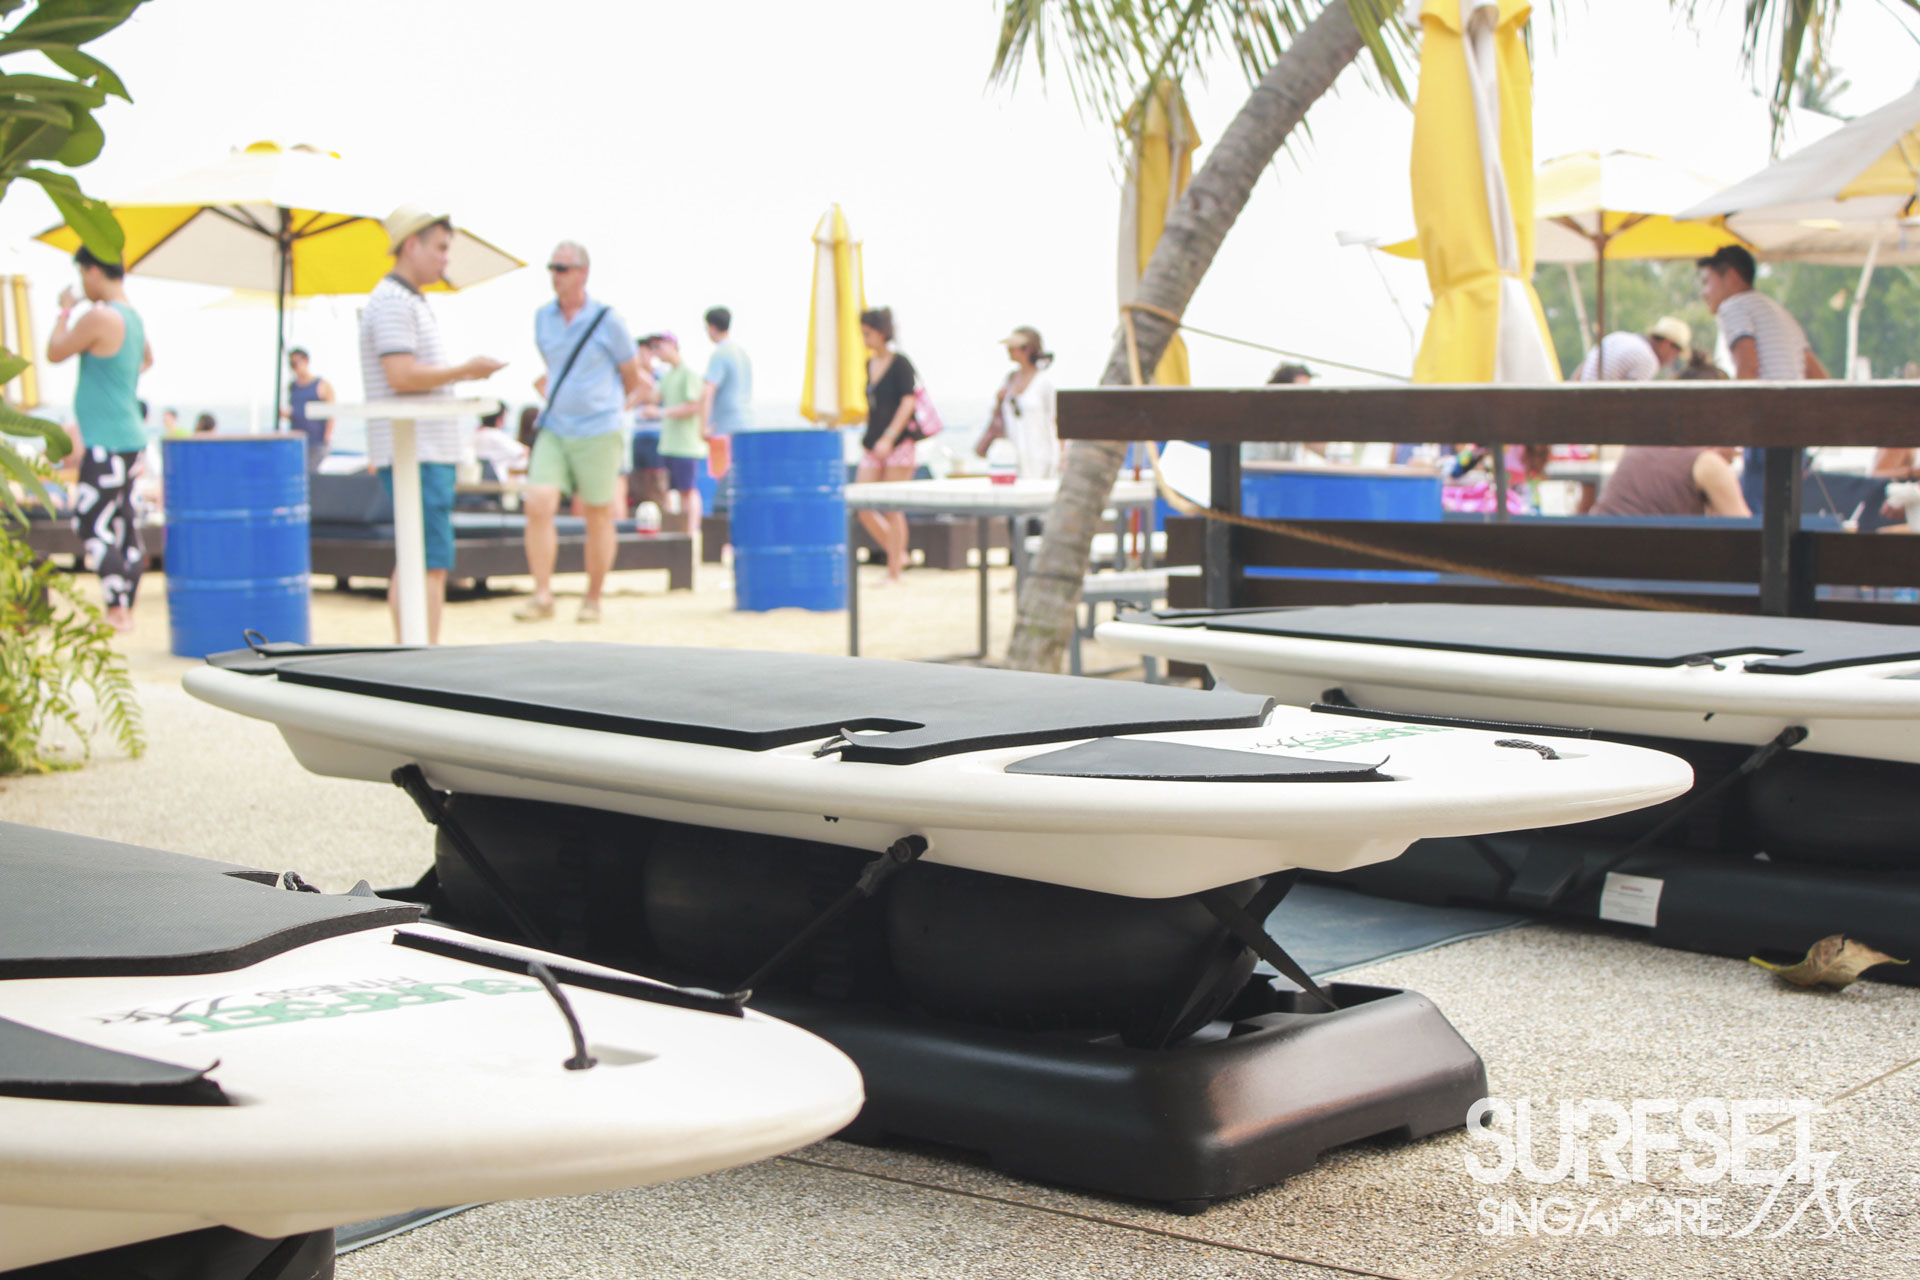 Soulscape 2015 - Surfset Fitness boards at Sentosa